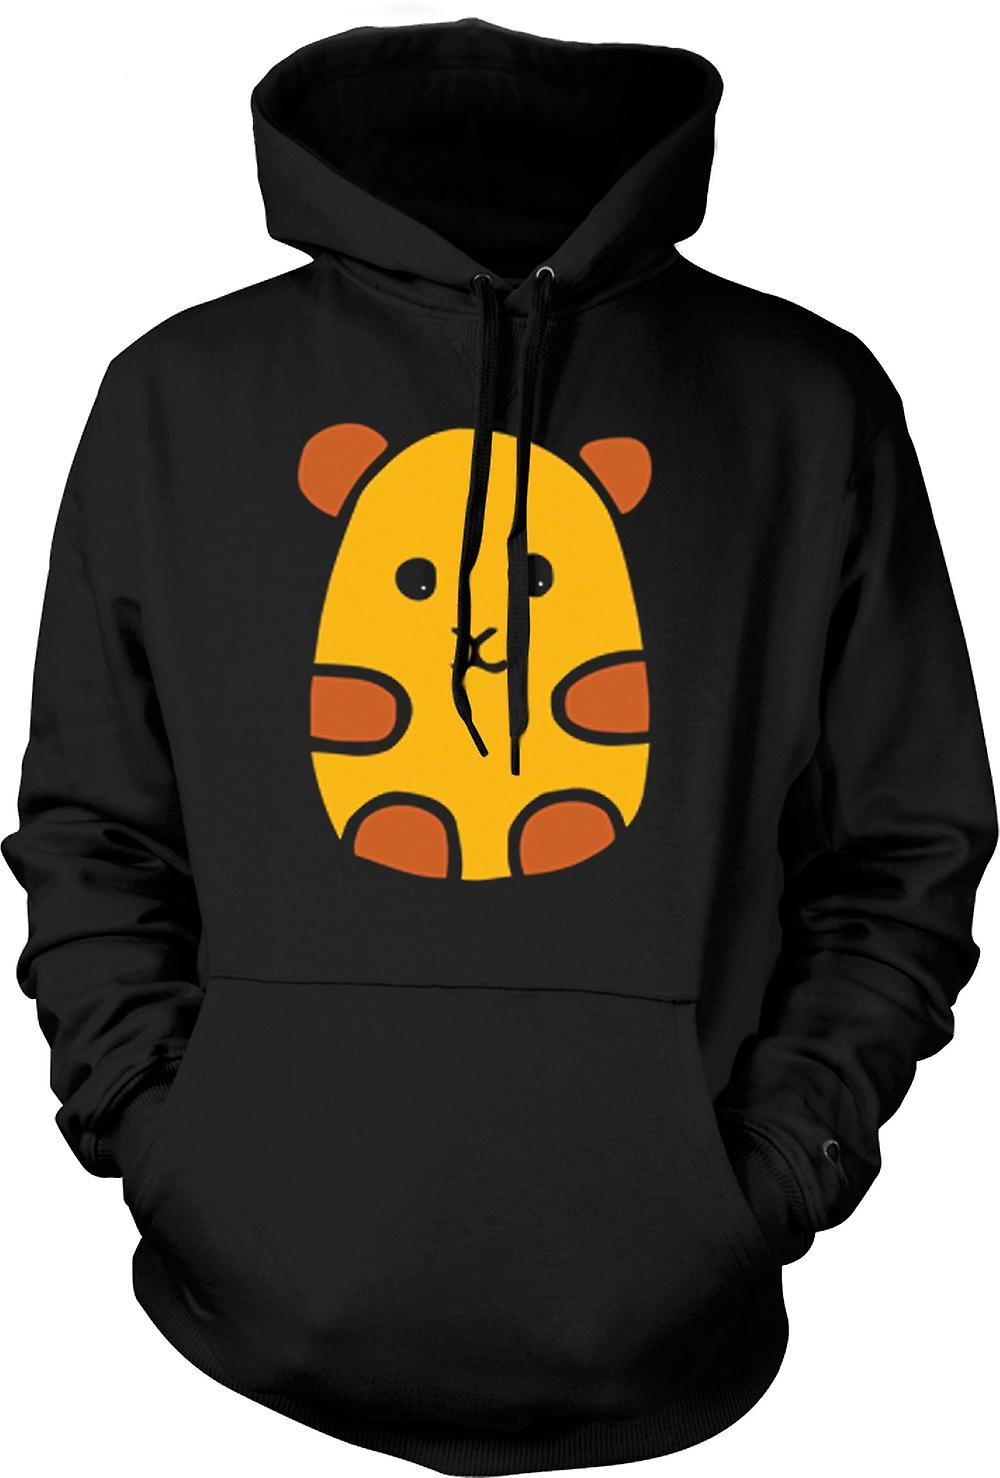 Mens Hoodie - Cartoon Hamster Design